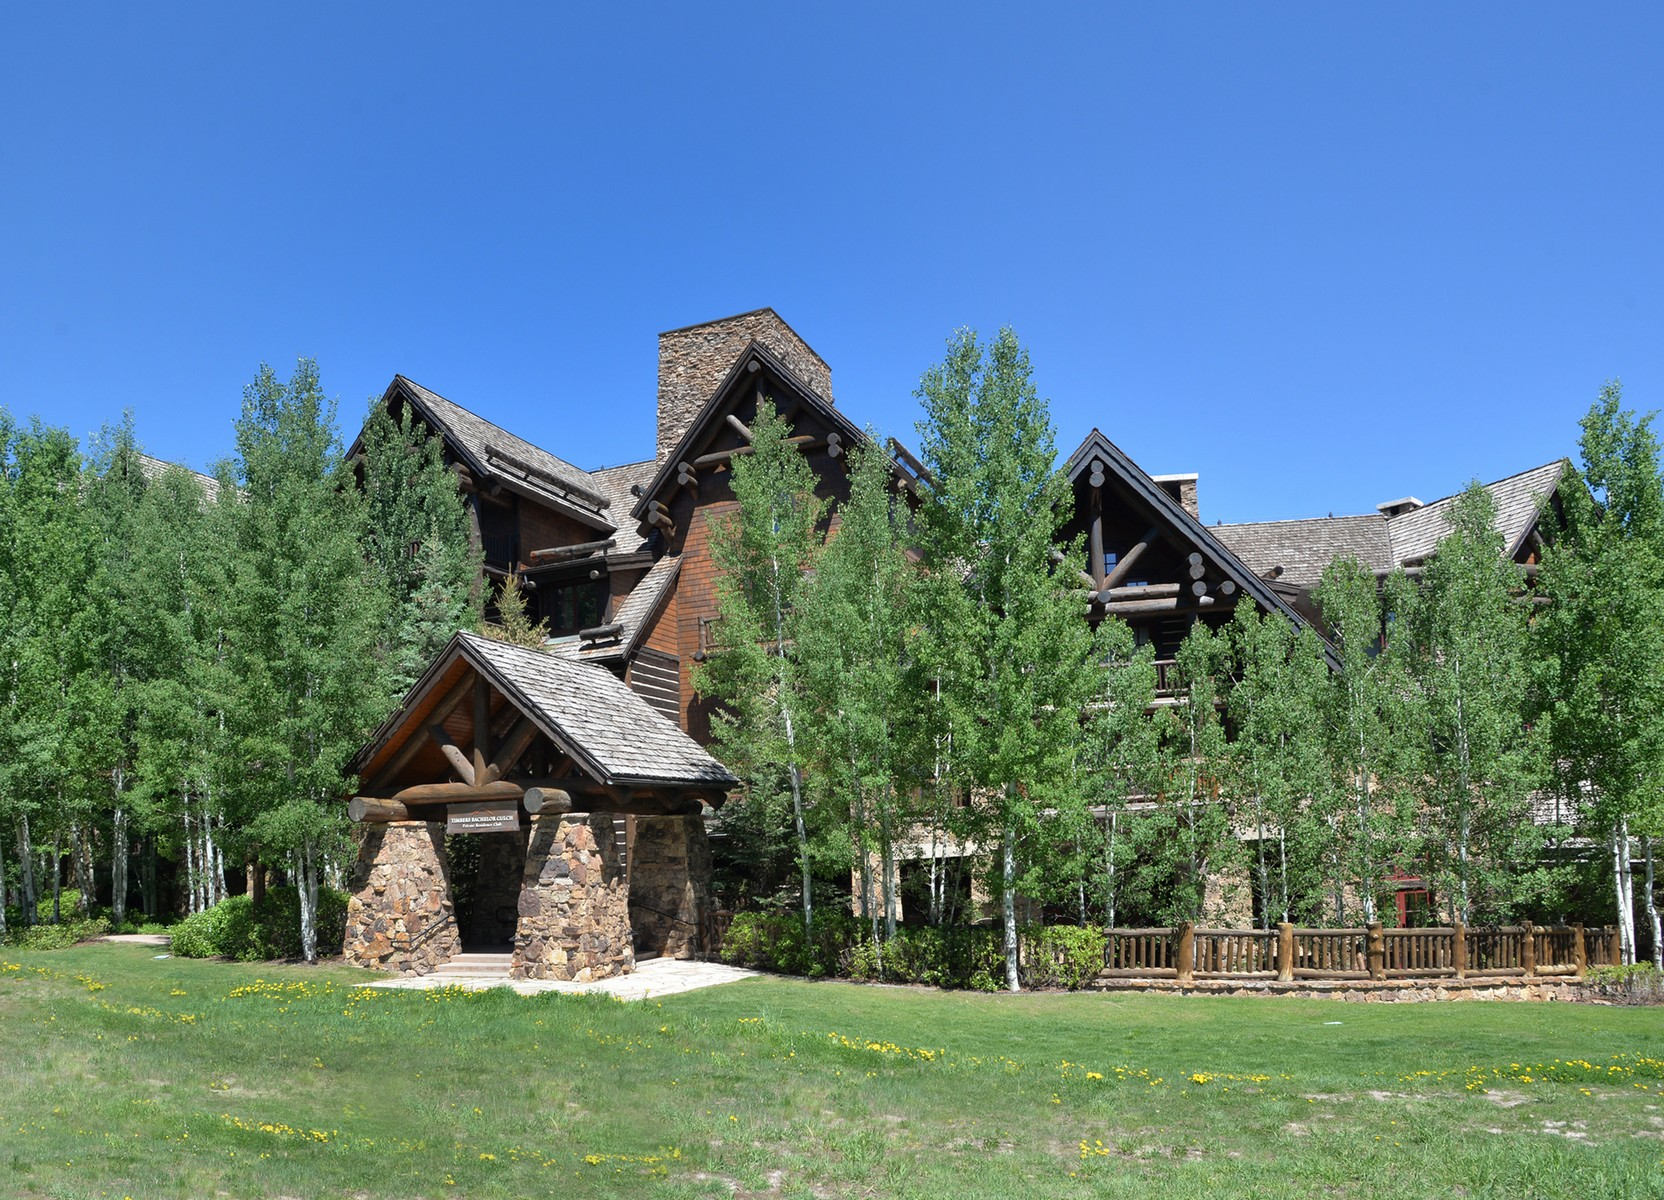 Condominium for Sale at The Timbers, Bachelor Gulch 100 Bachelor Ridge Road 3208-09 Avon, Colorado, 81620 United States